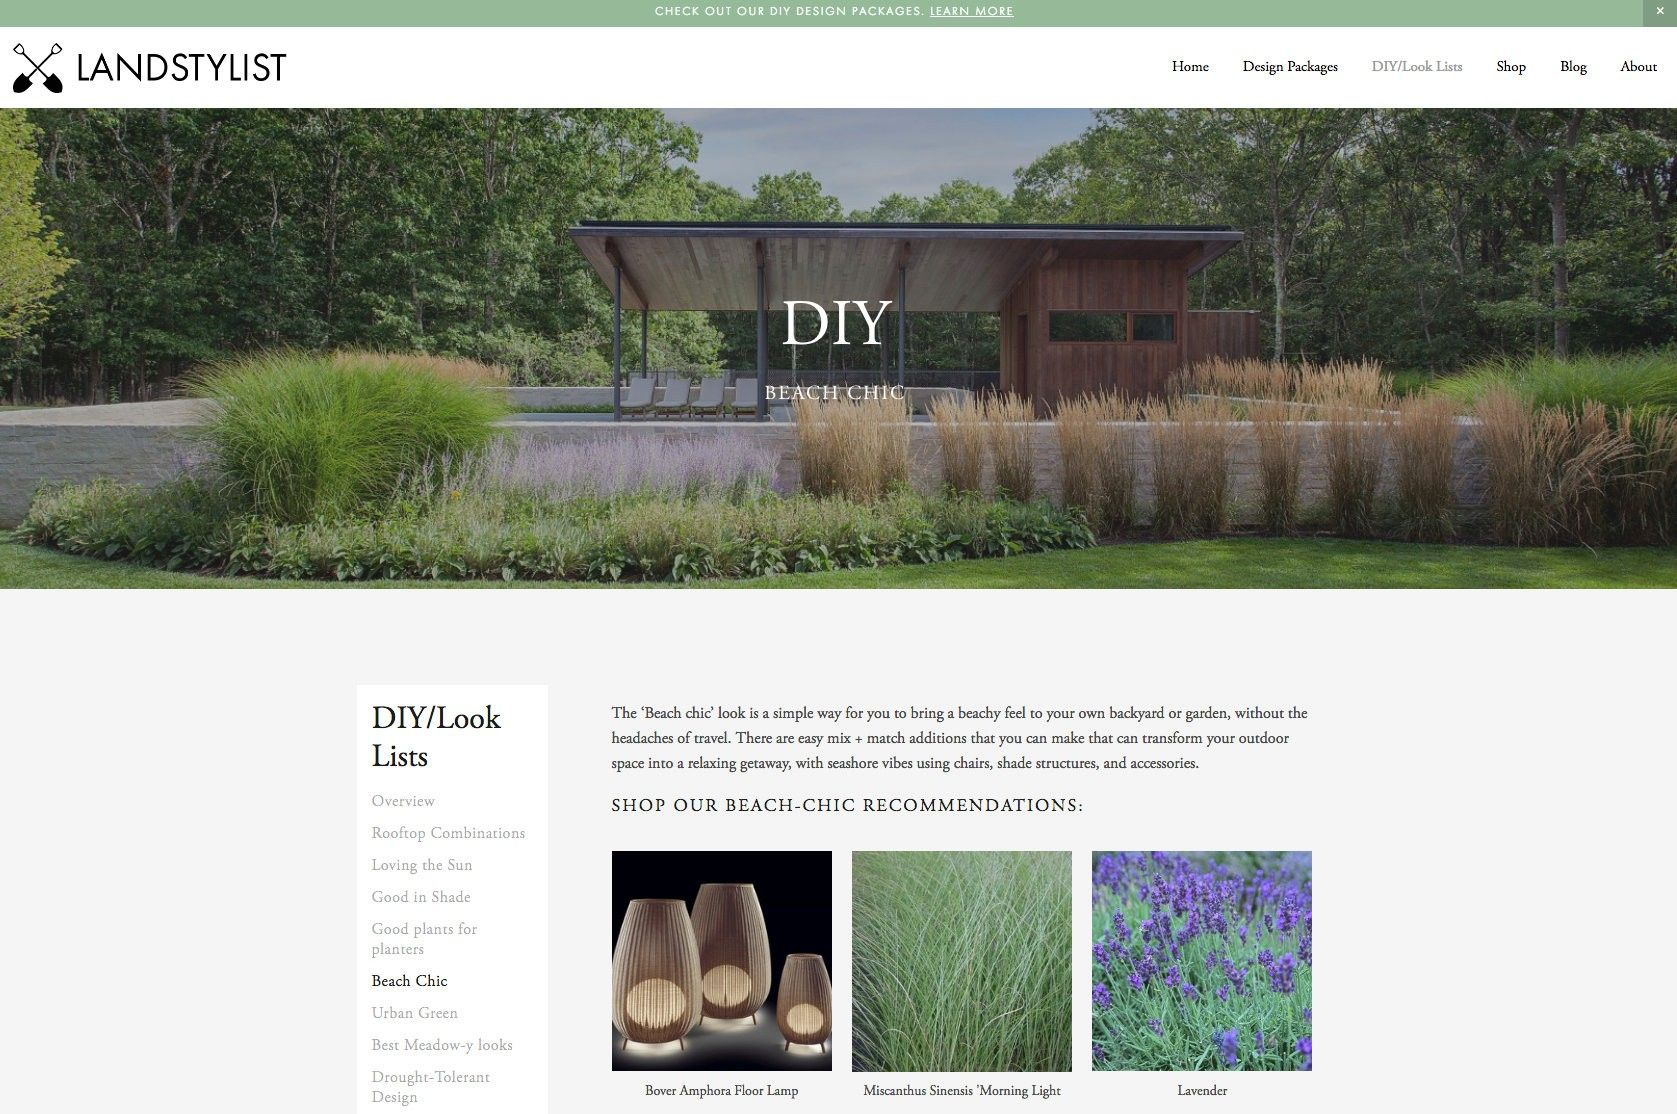 Landscaping For The Not So Green Thumb Landscape Design App Landscape Design Landscape